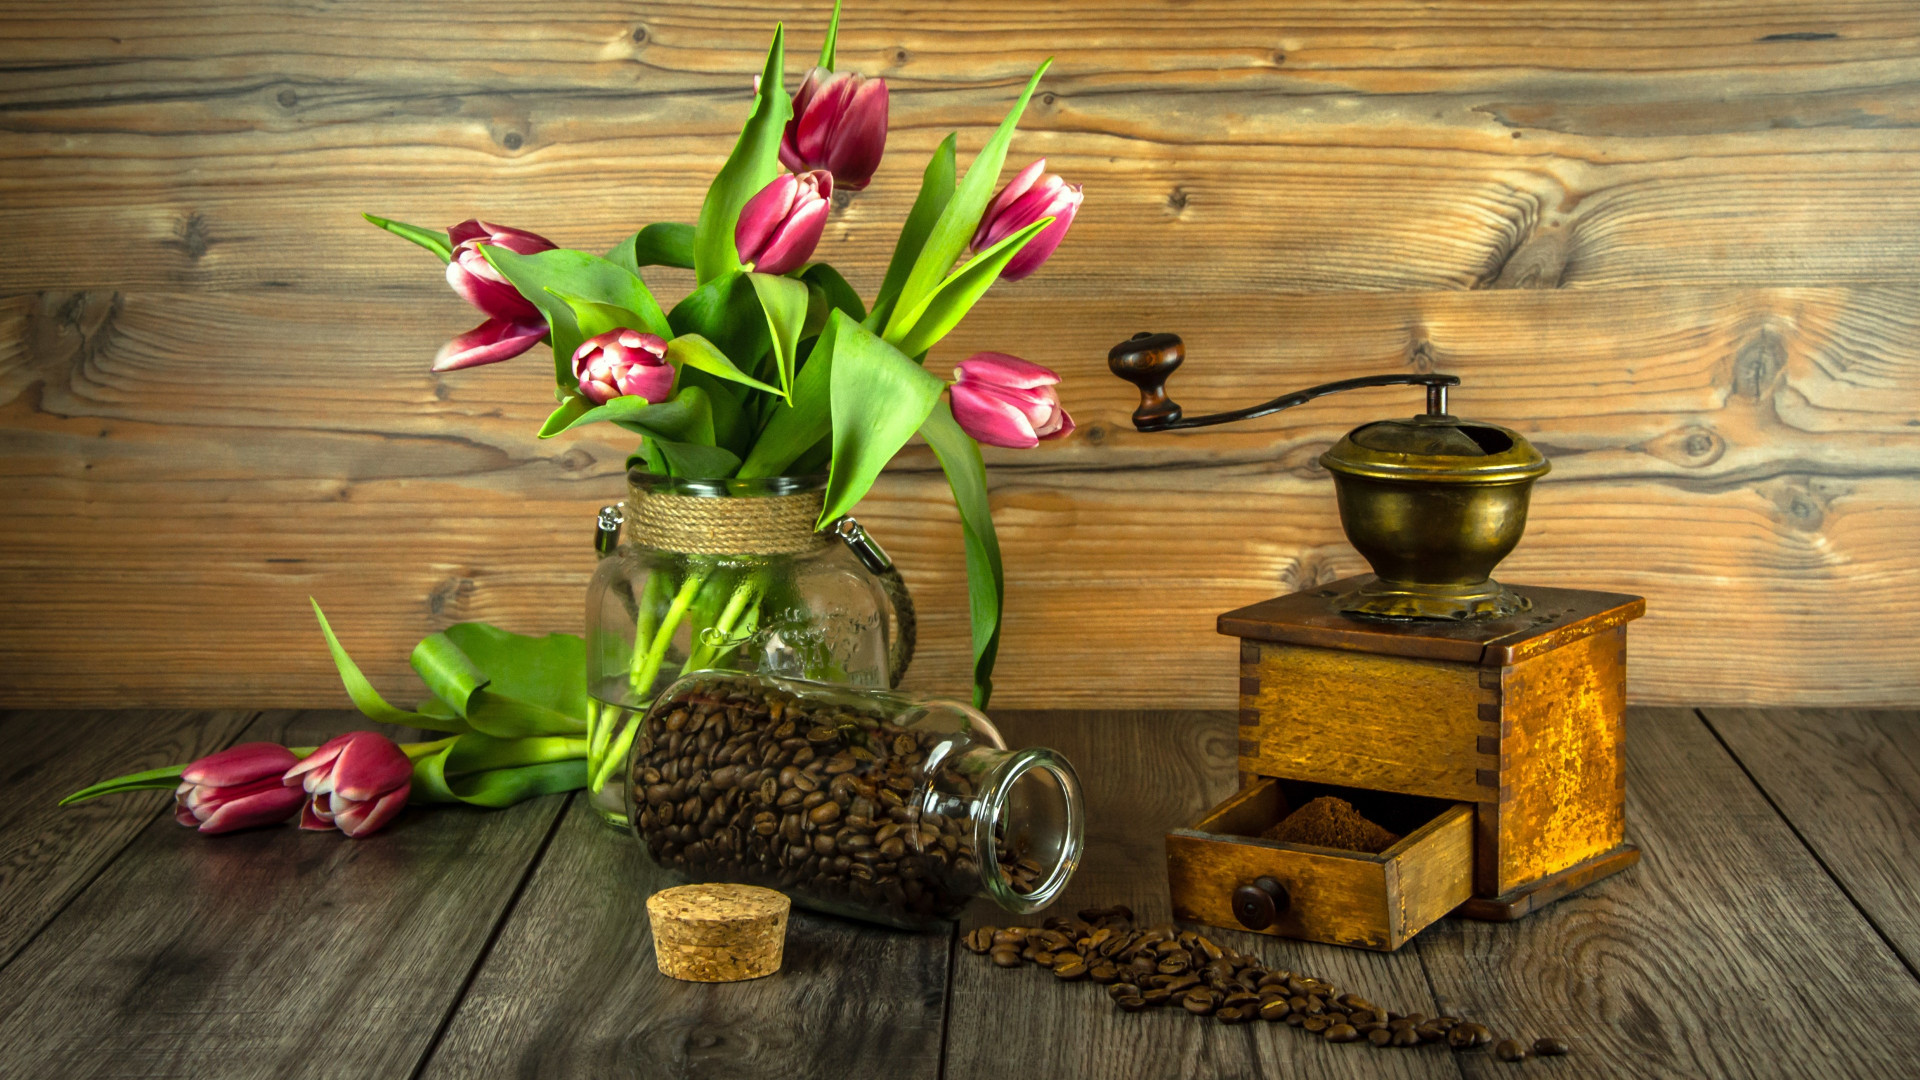 Red tulips and coffee grains wallpaper 1920x1080